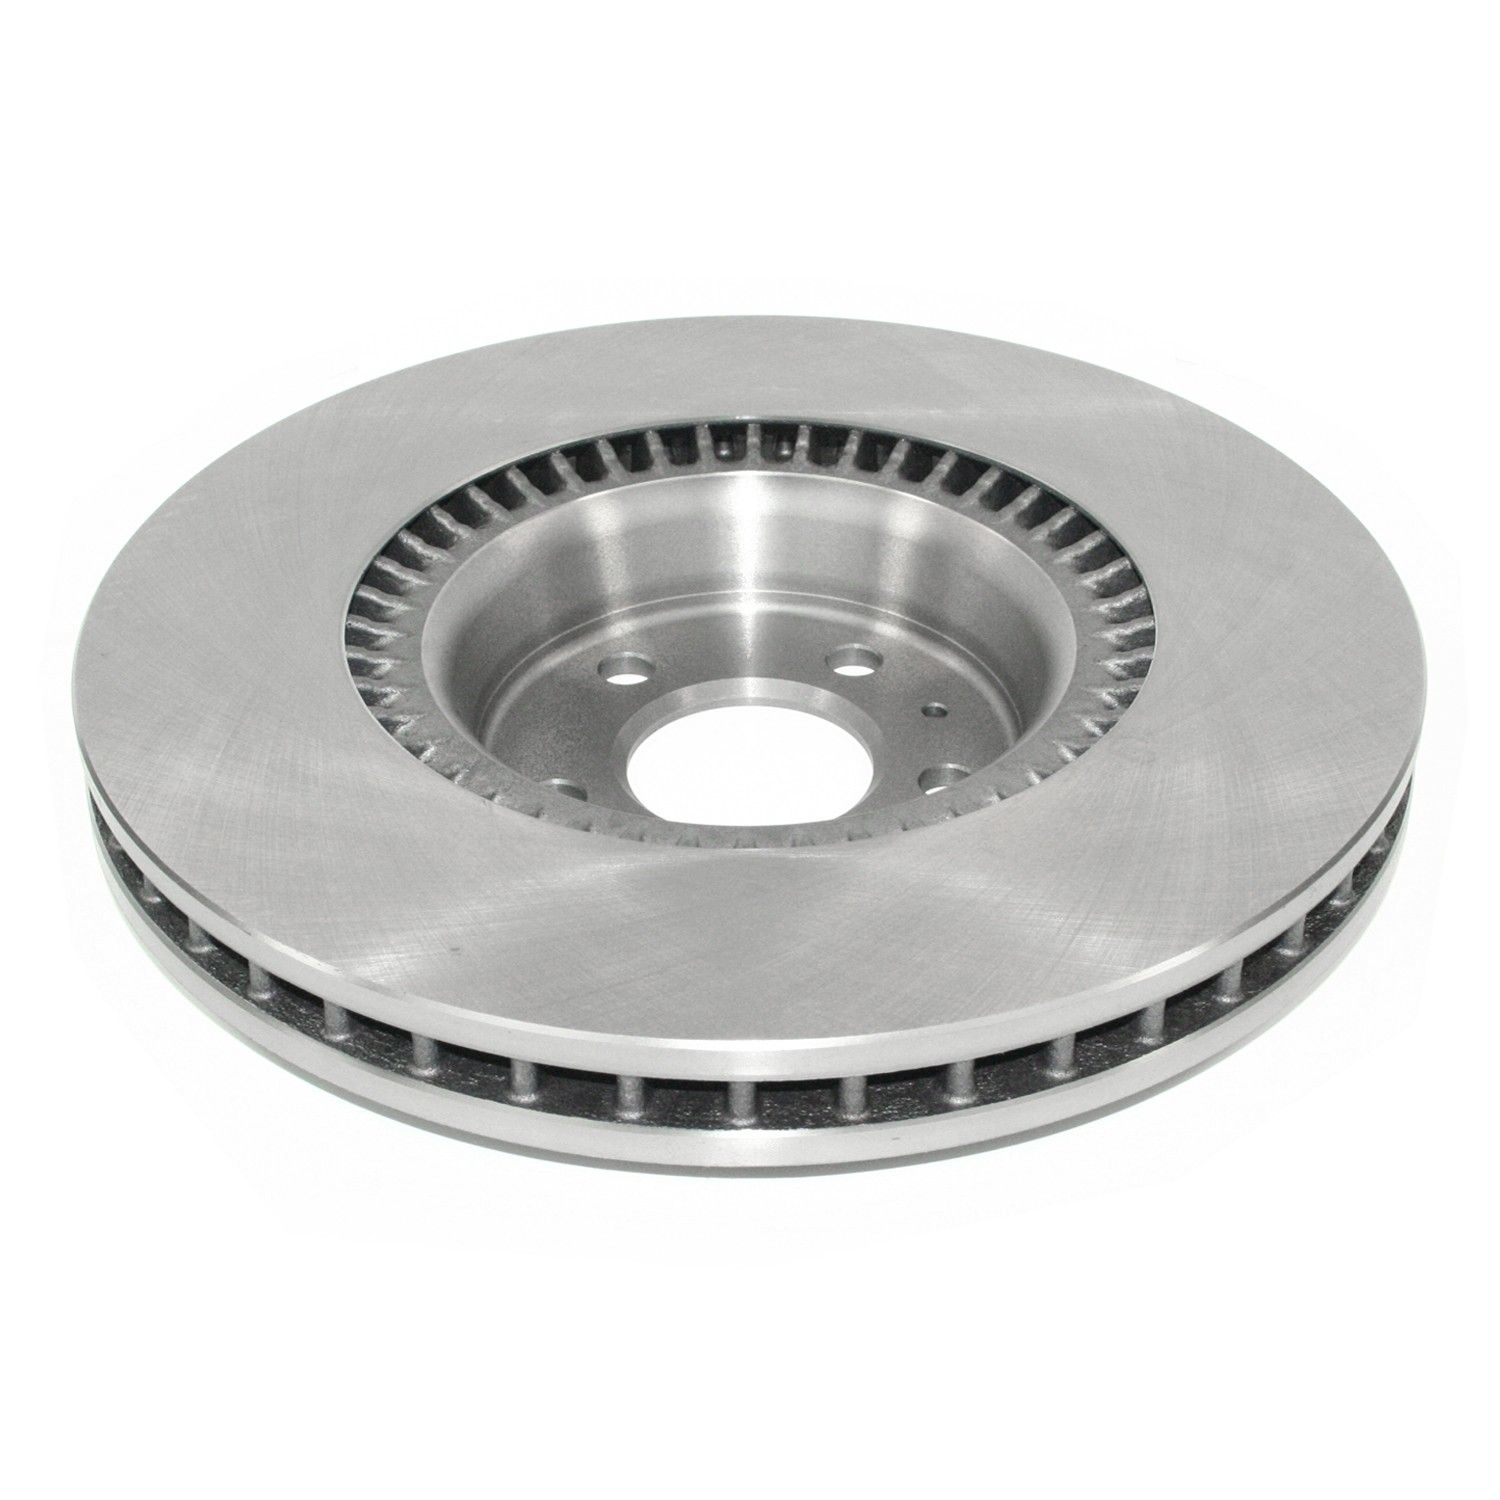 EBR648XPR Drilled and Slotted Rotor Power Stop